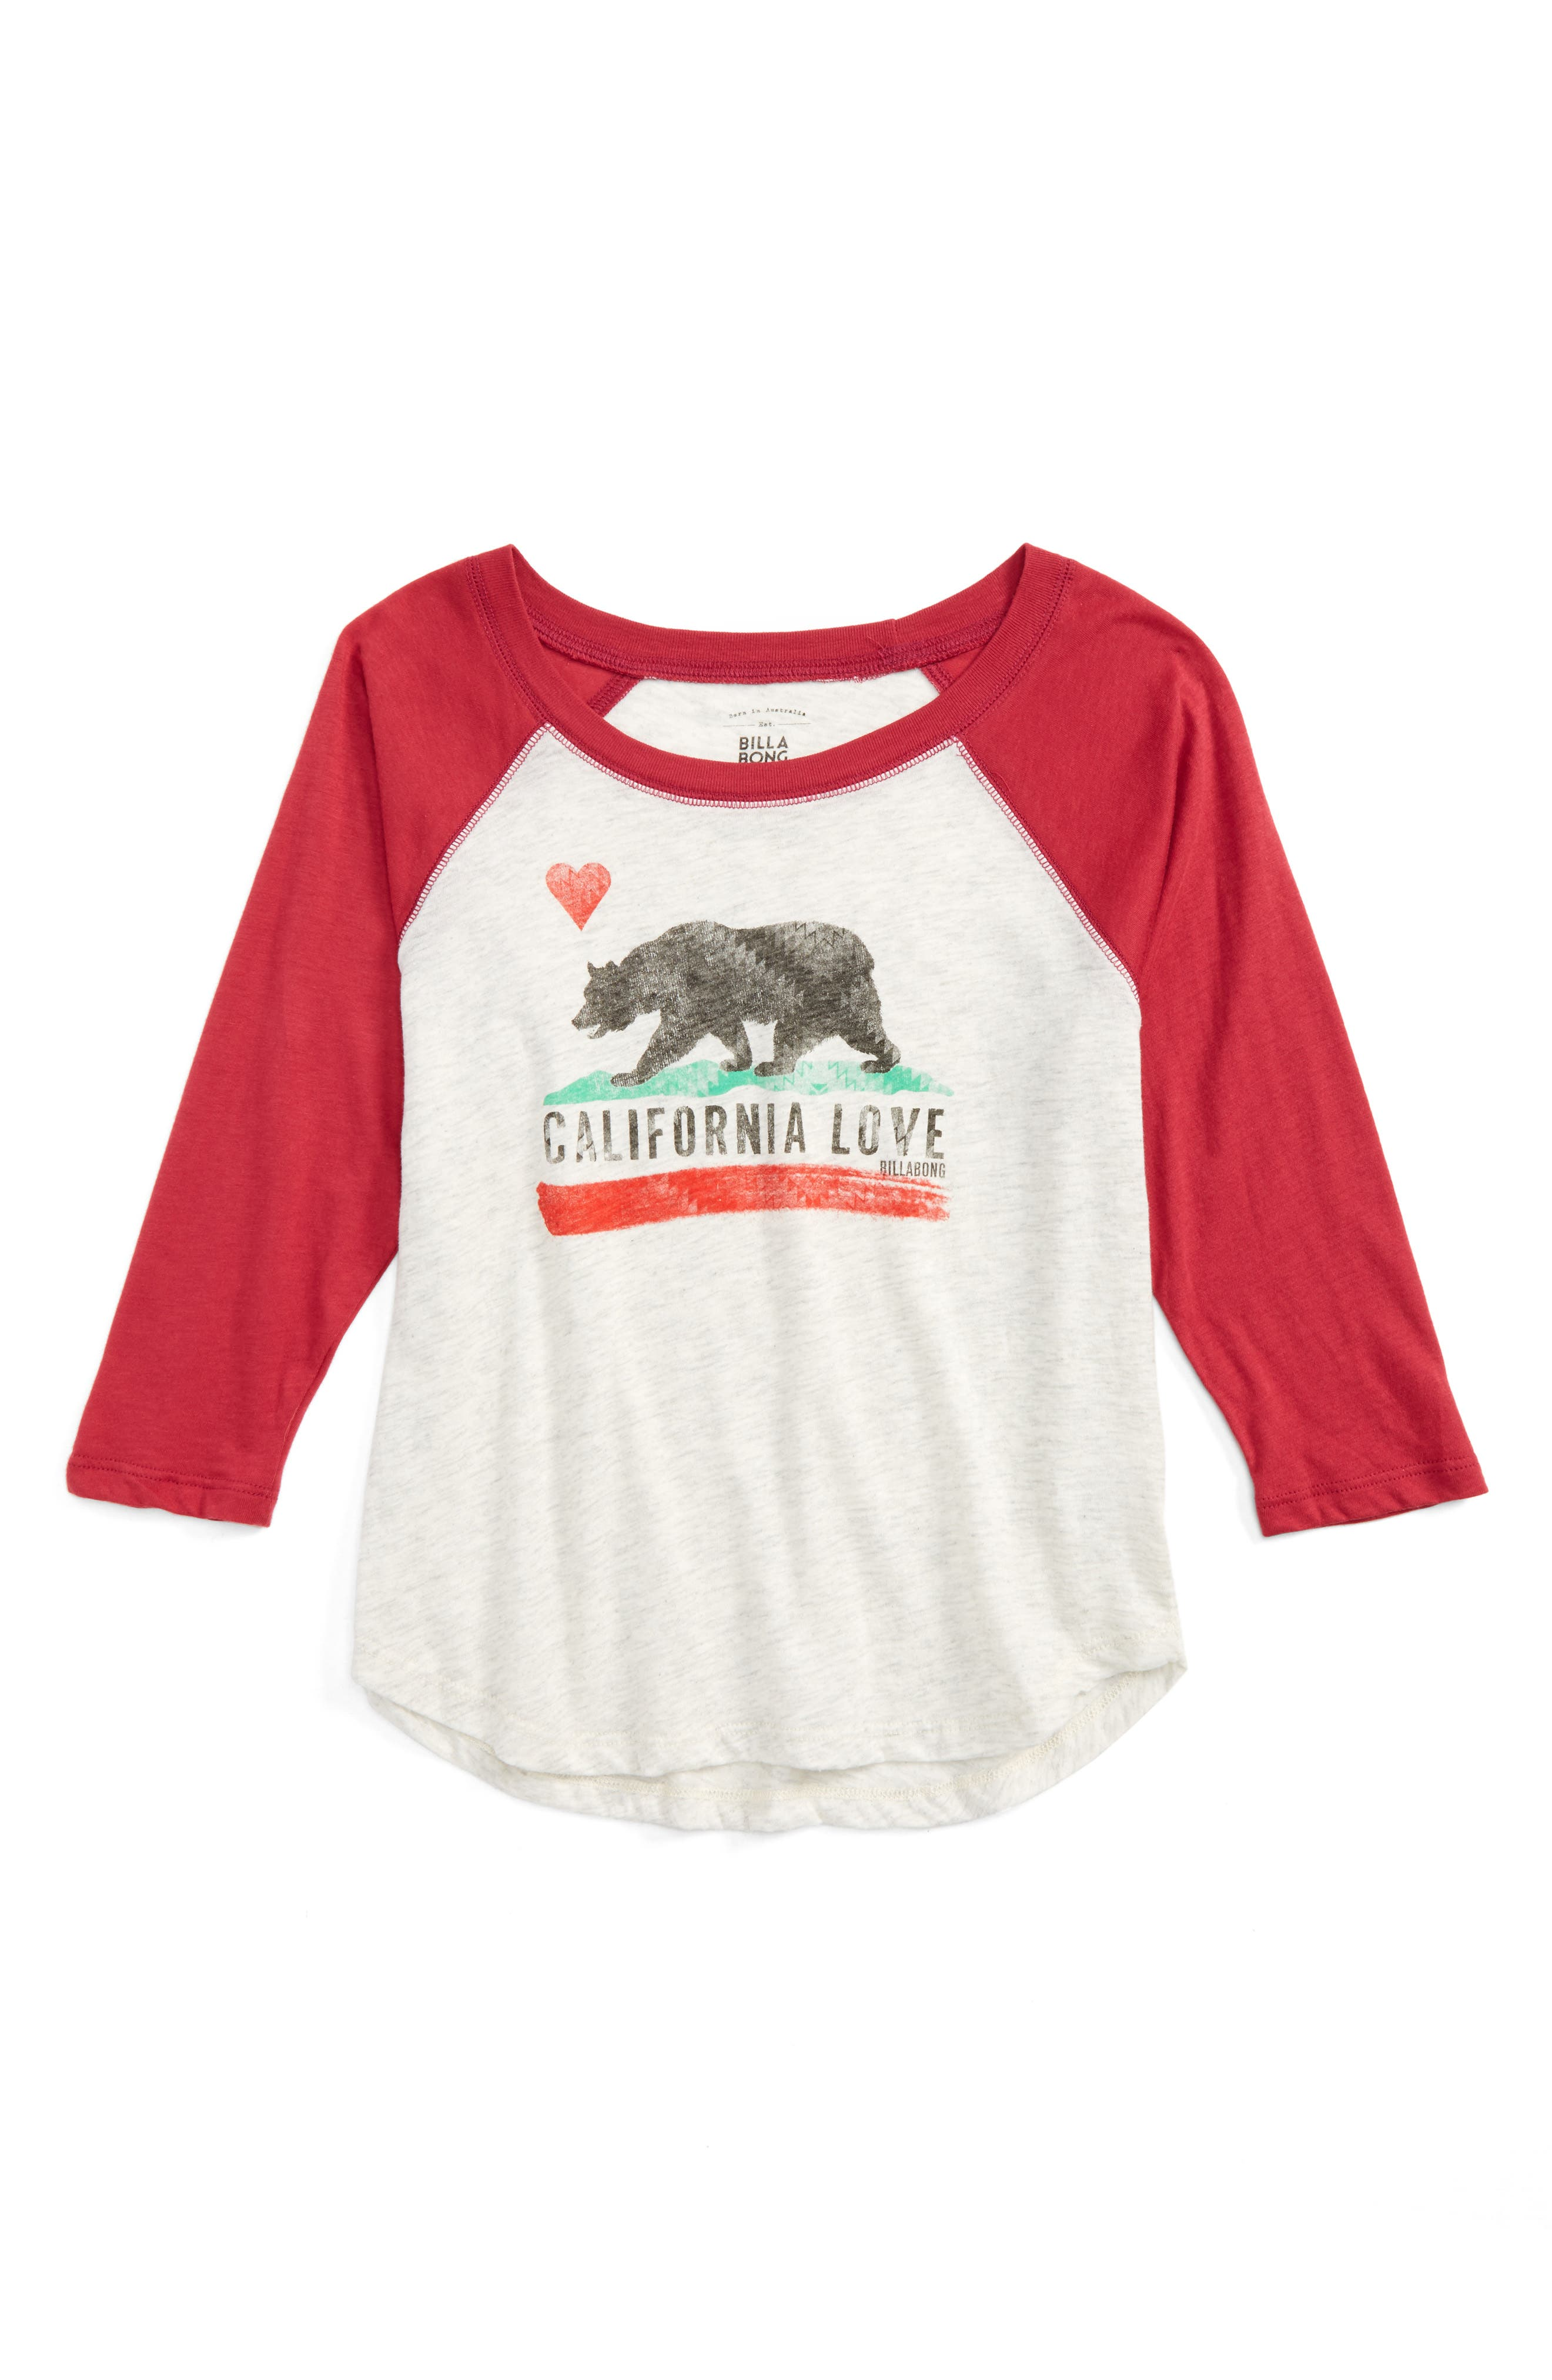 Cali Bear Original Graphic Tee,                             Main thumbnail 1, color,                             024